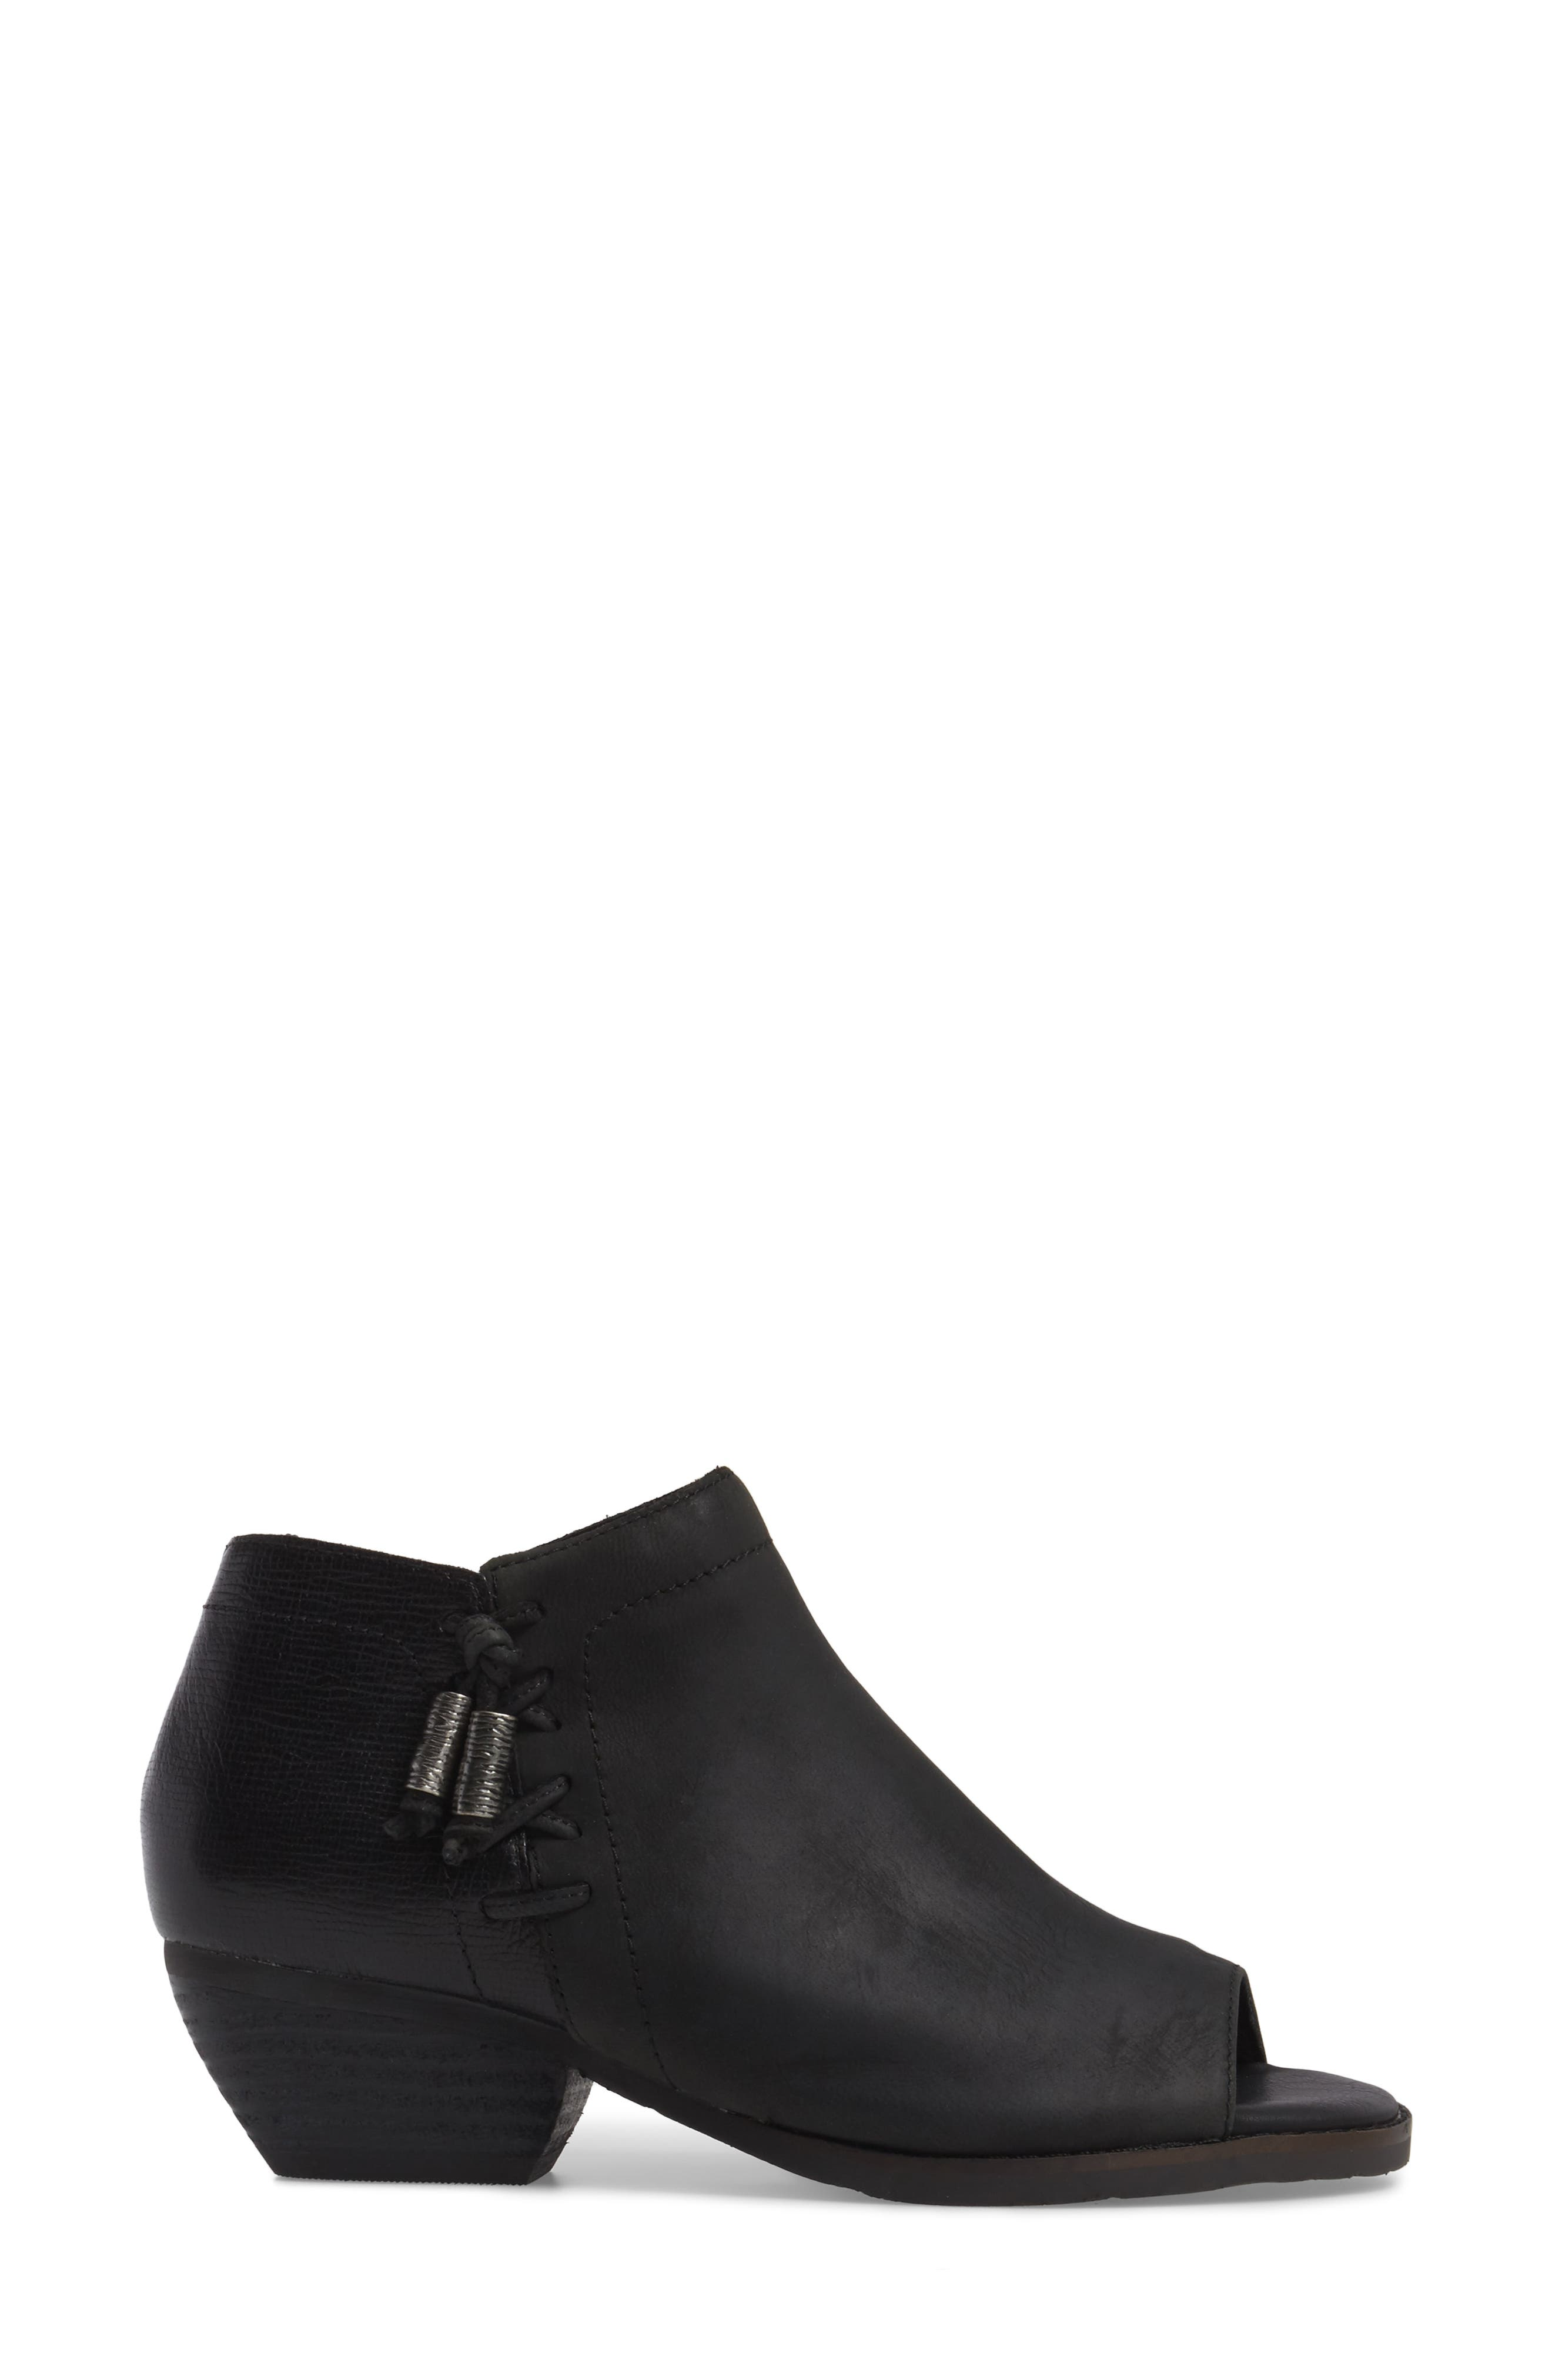 Truckage Open Toe Bootie,                             Alternate thumbnail 3, color,                             BLACK LEATHER